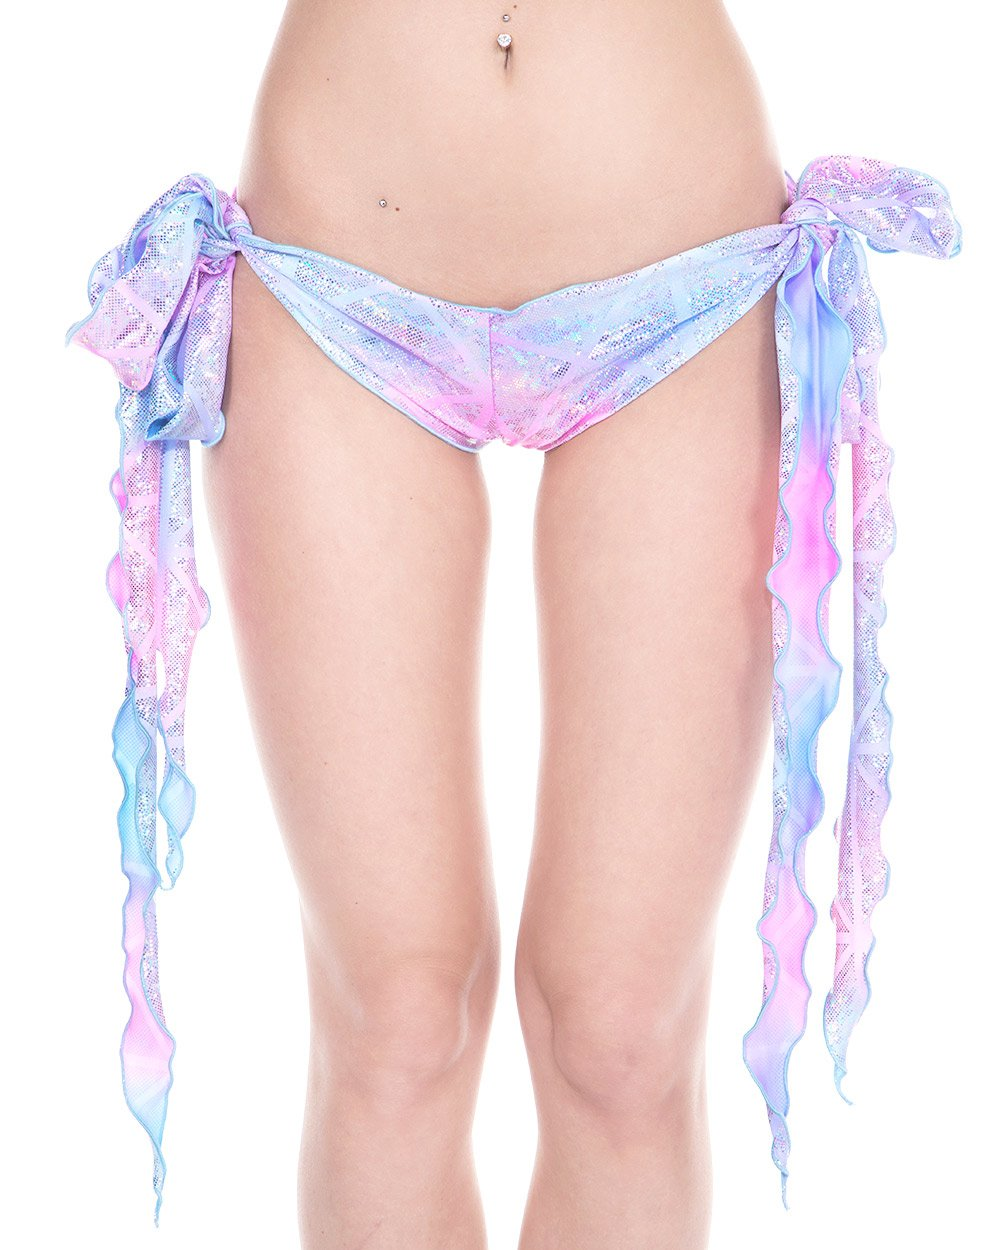 iHeartRaves Disco Party Ribbon Tie Rave Booty Shorts (Cotton Kandi), One size fits most